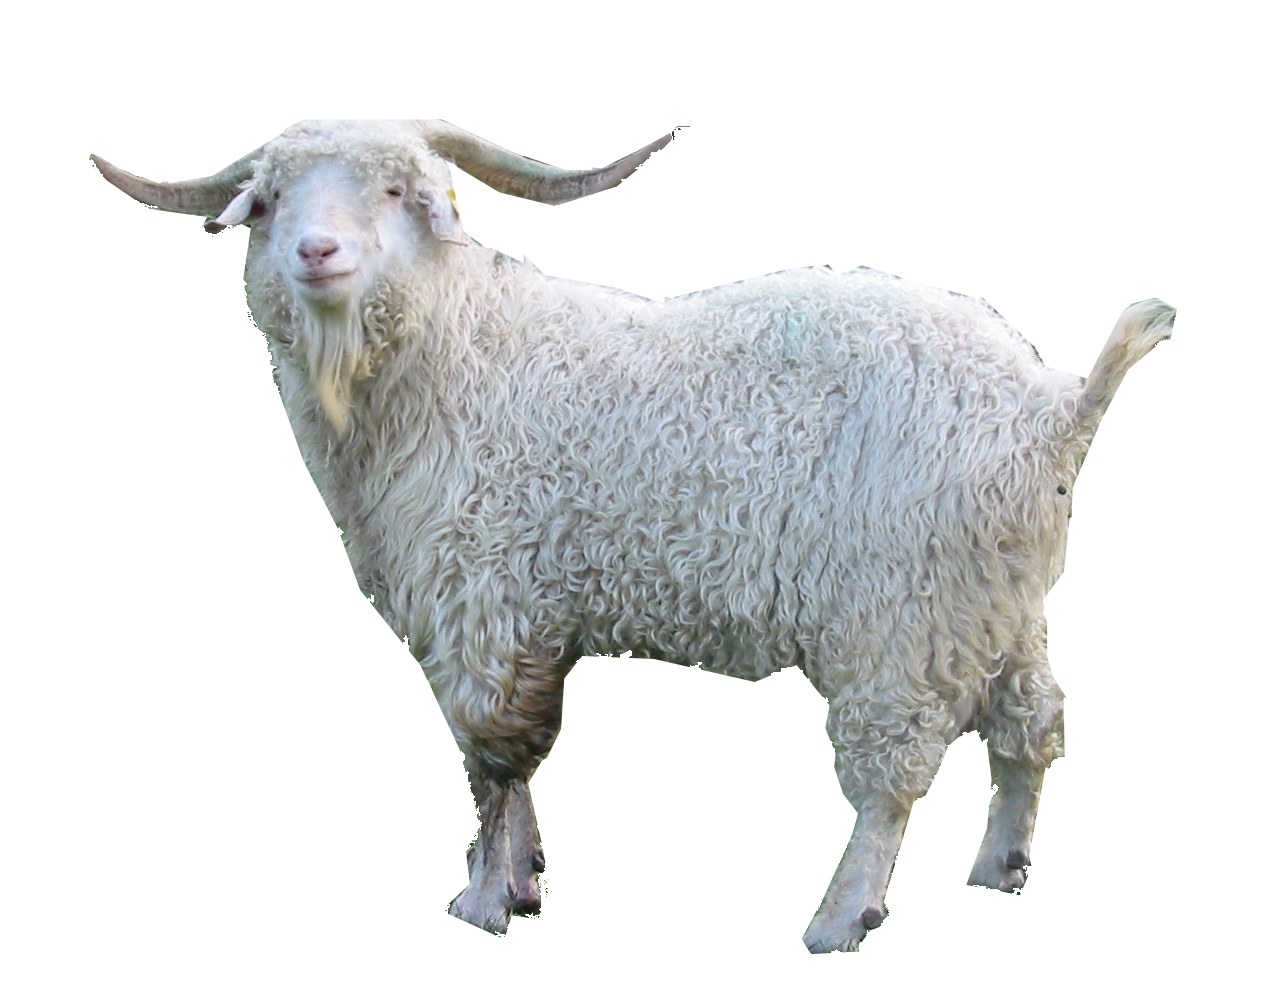 Png transparent images pluspng. Goat clipart kambing